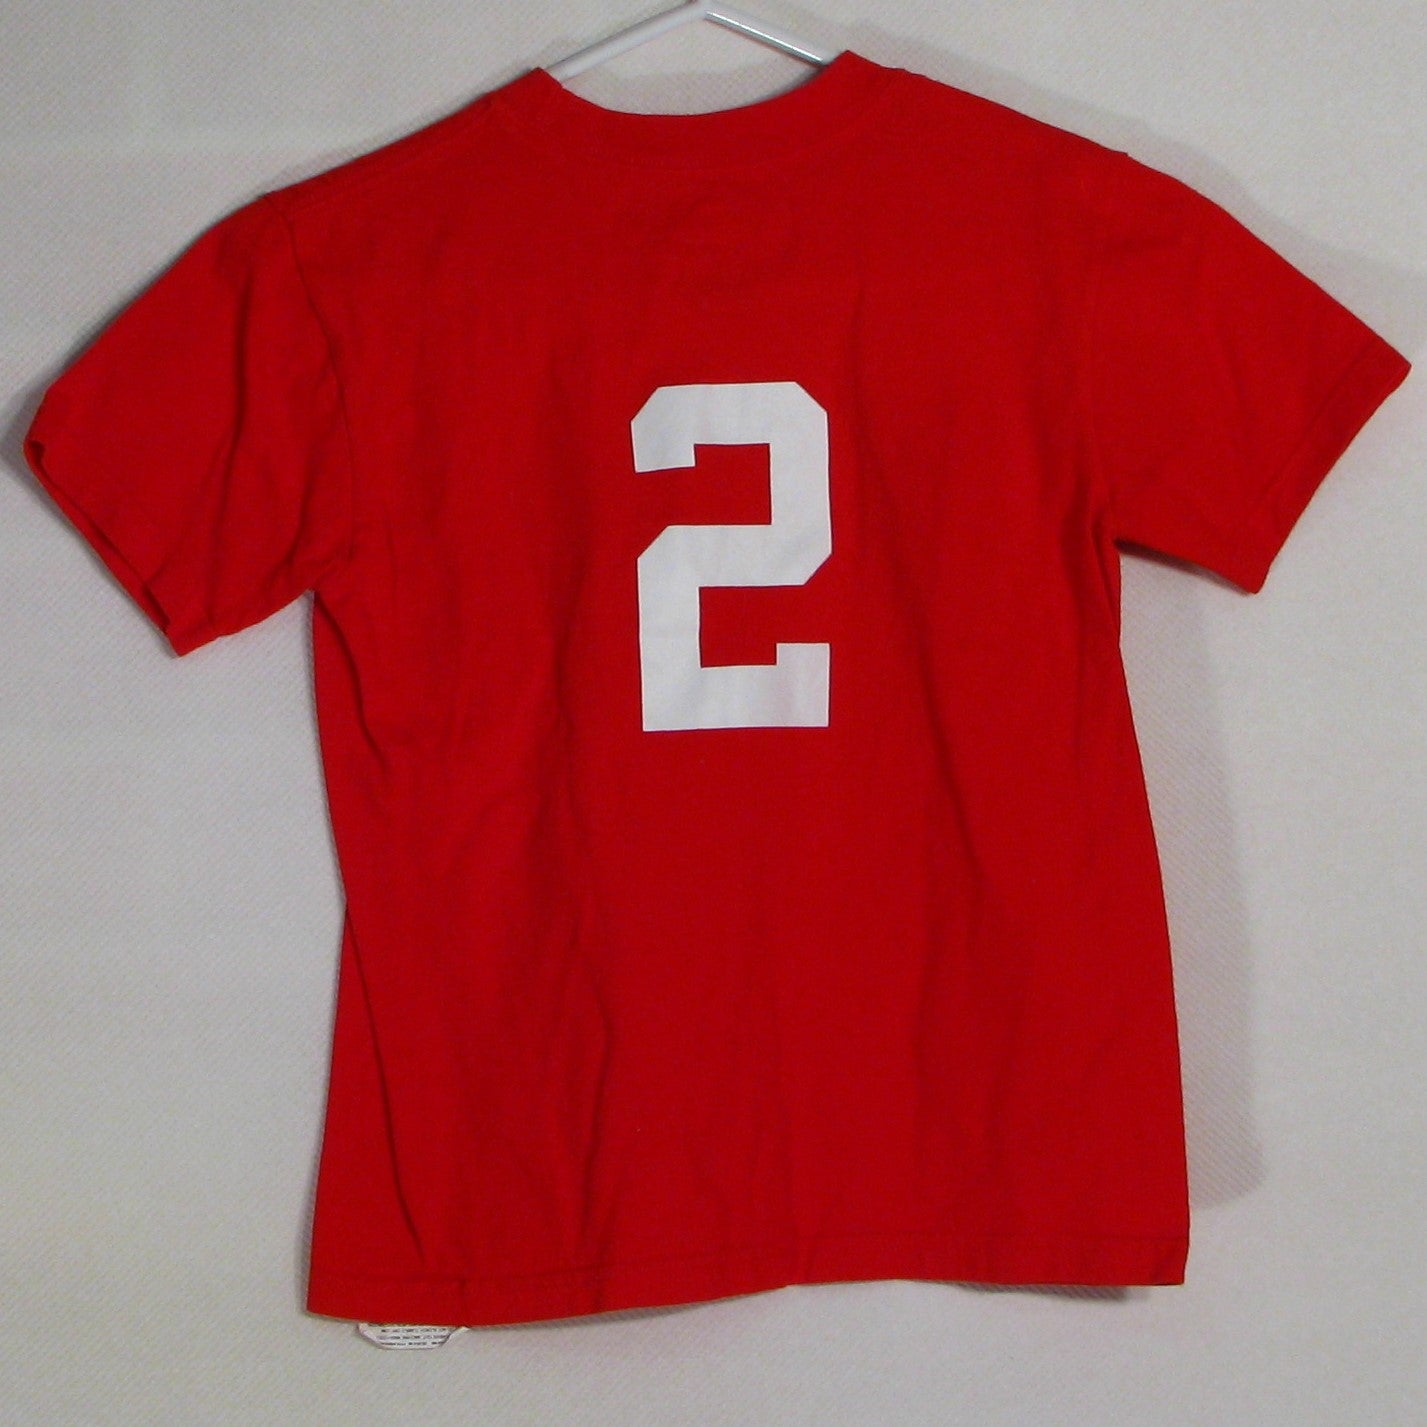 low priced 43352 488dc Washington Nationals #2 T-Shirt Youth